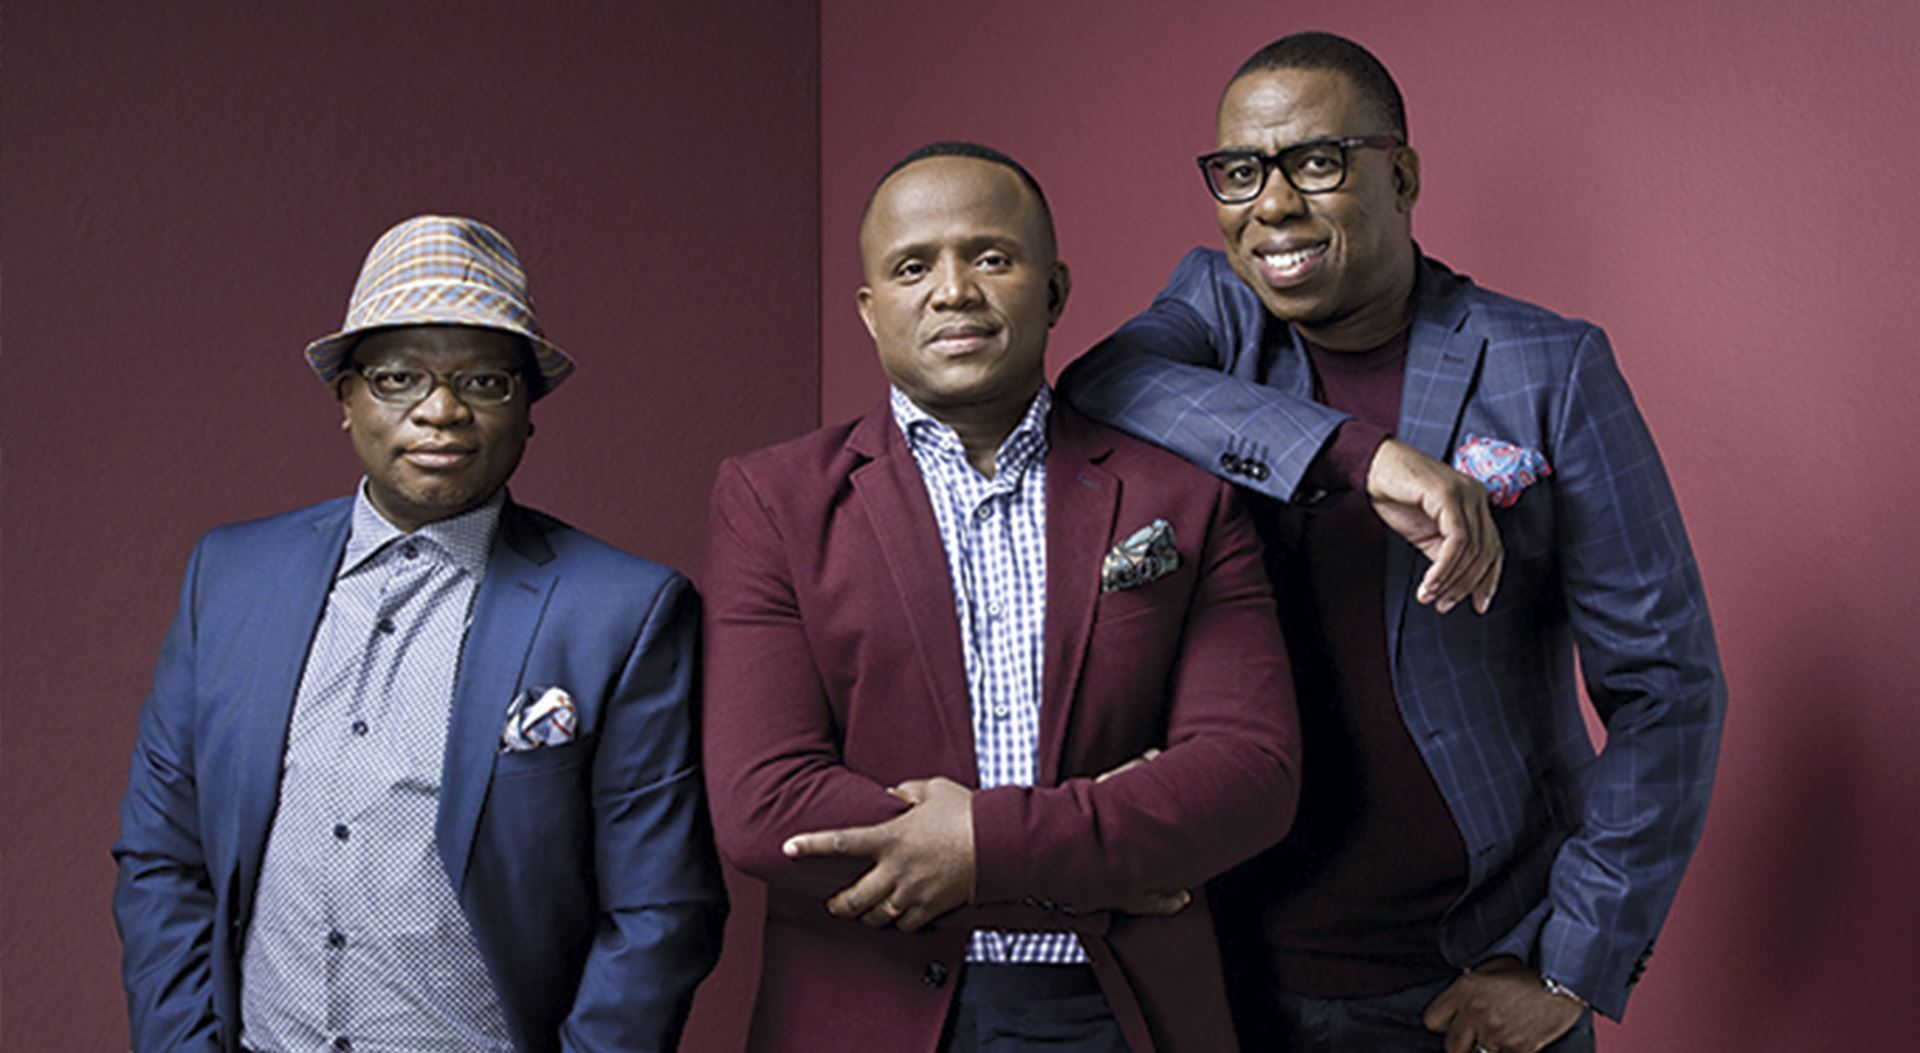 Top South African artists of Apple music in the previous four years: